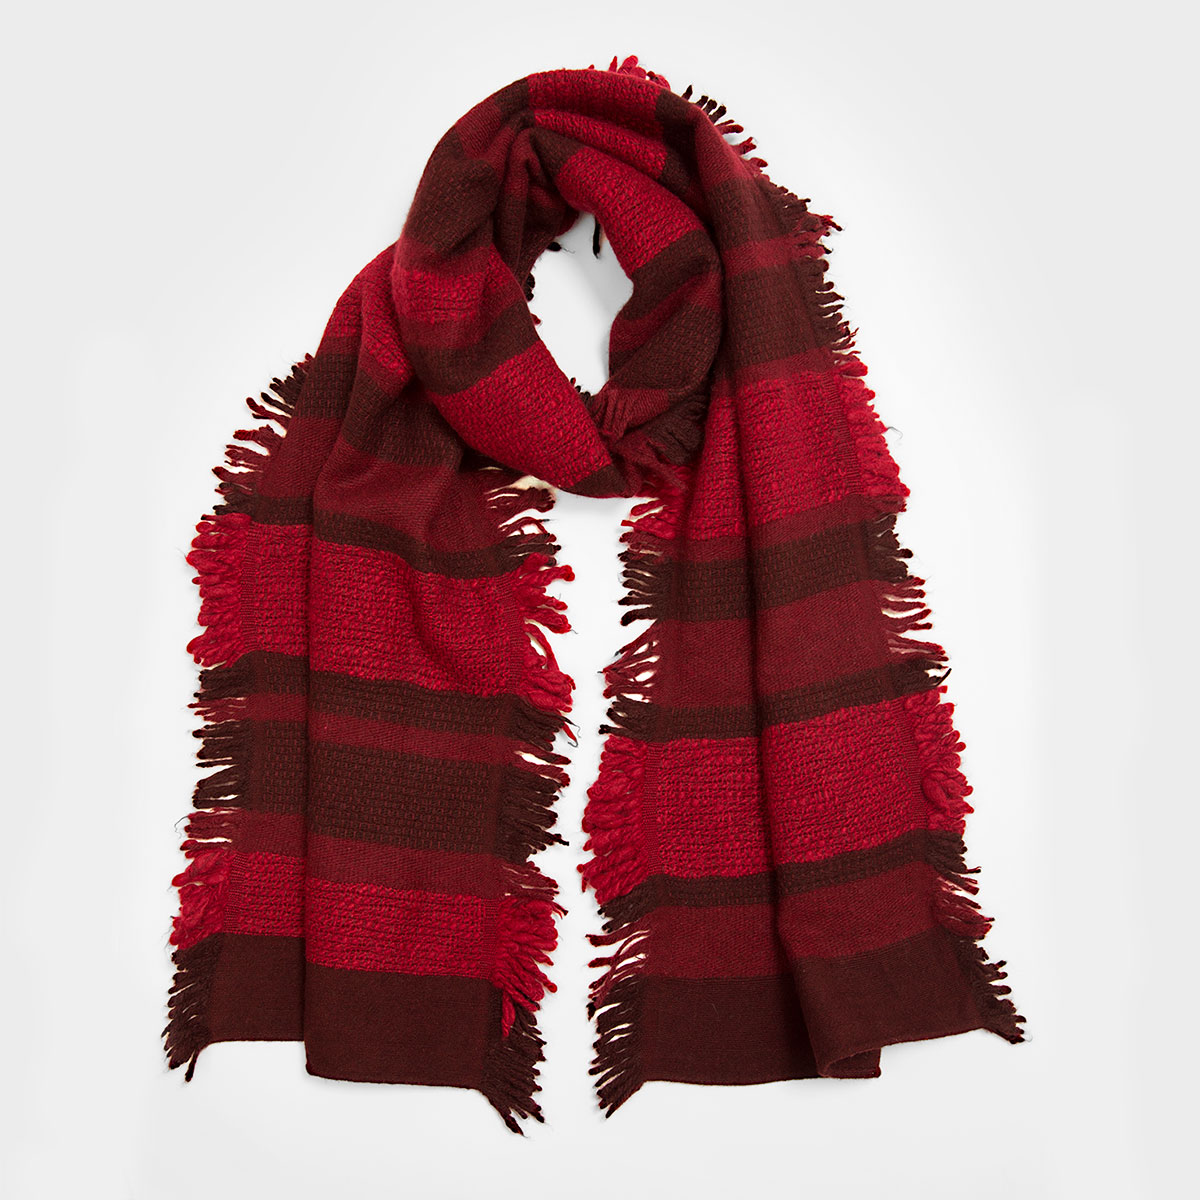 The stunning array of crimson, scarlet, and burgundy stripes transform this classic fall accessory into a covetable statement piece. Its 100% yak wool composition is the new standard in luxury fibers-- soft as cashmere, but with superior warmth and durability. 